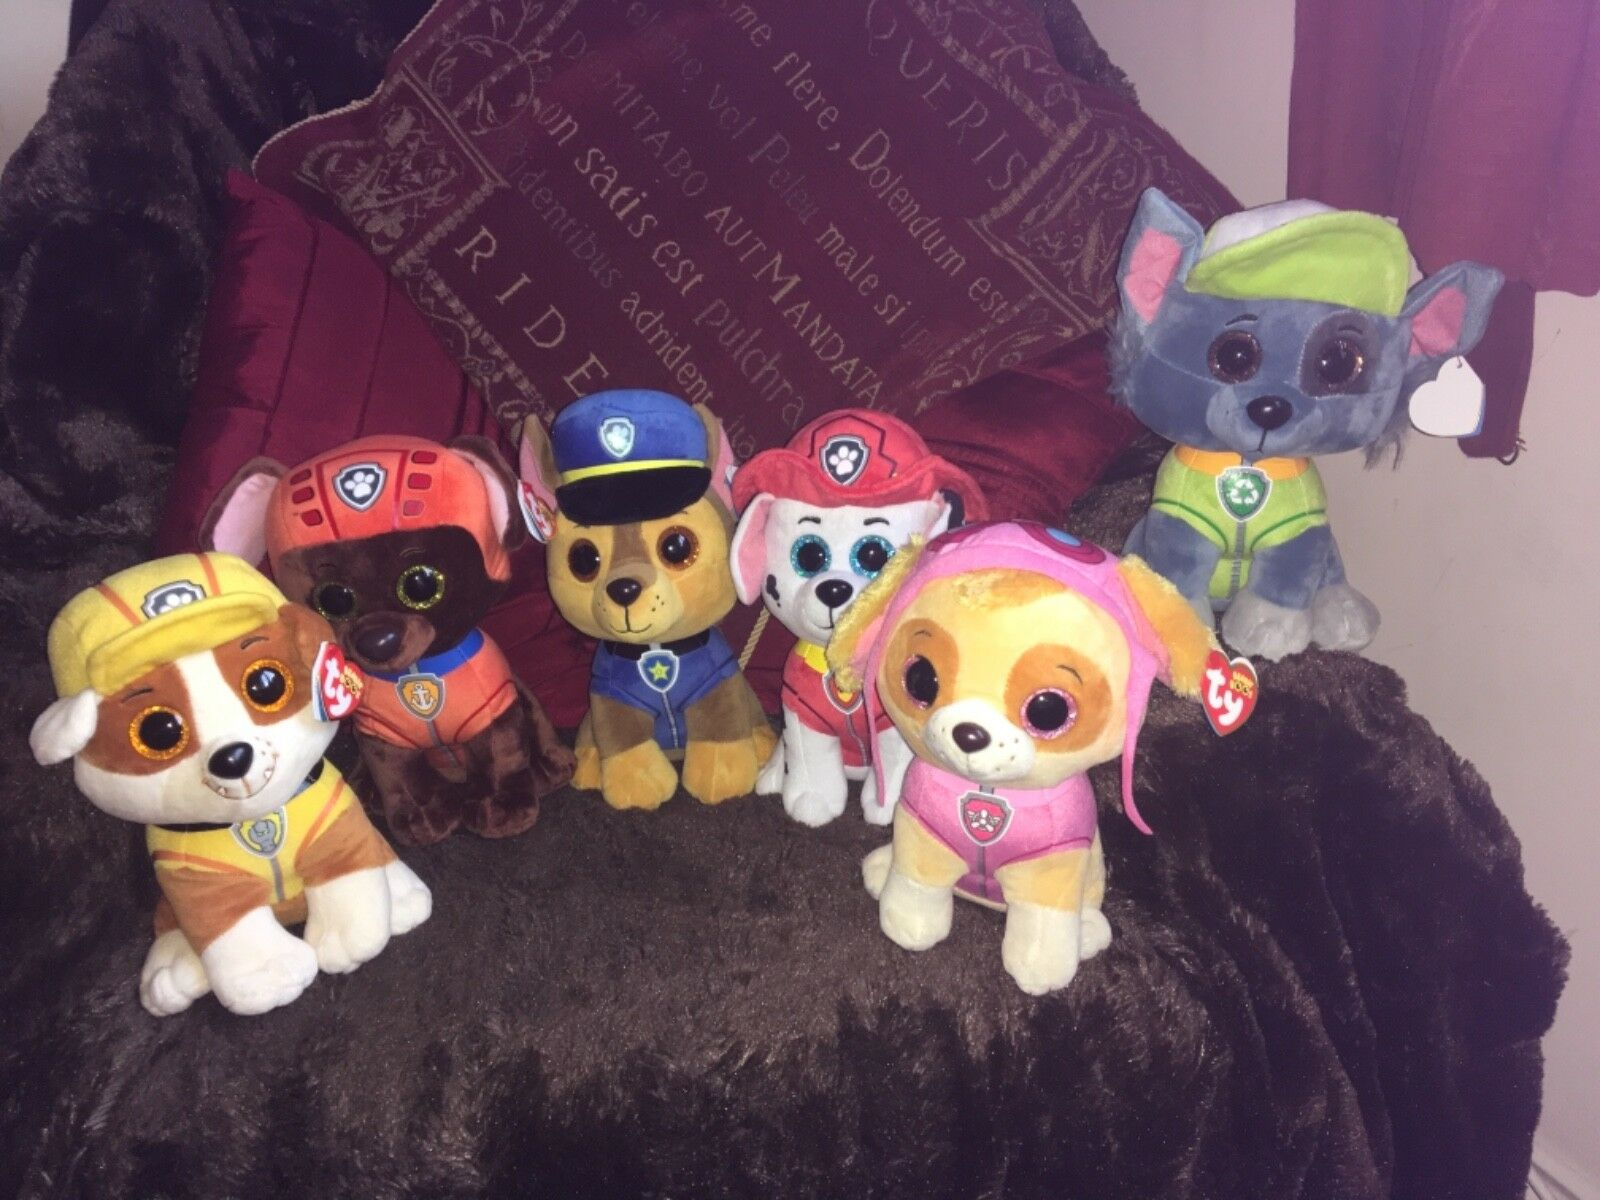 "FULL SET 6 X TY BEANIE BEANIE BEANIE BOO BUDDY PAW PATROL 6"" SOFT TOY PLUSH MARSHALL 222f40"